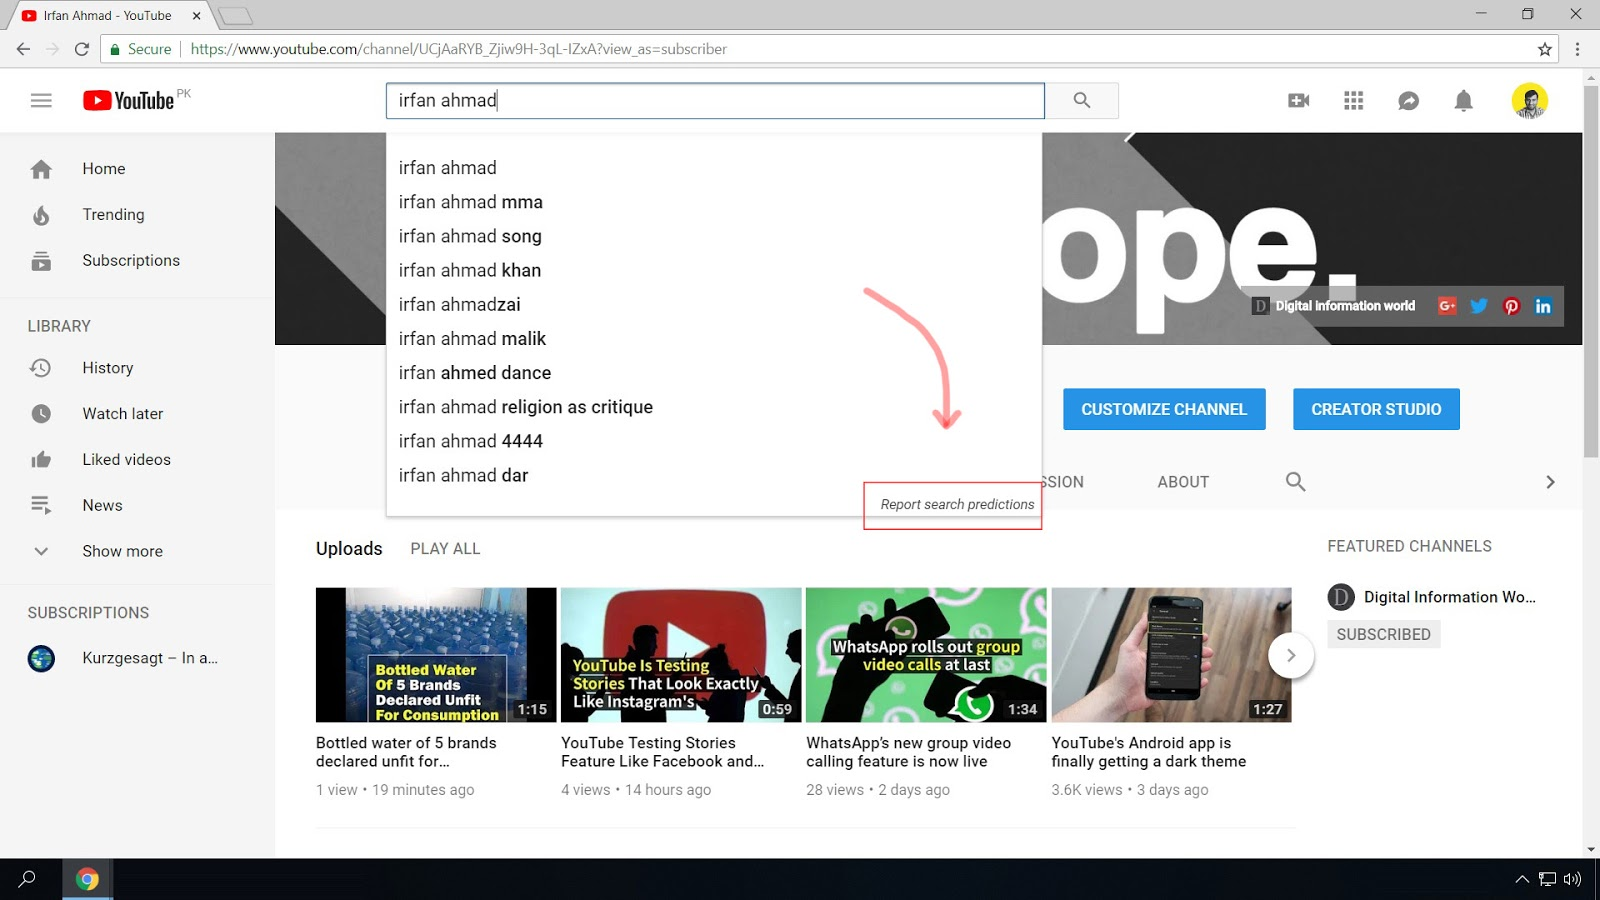 """When you search a keyword on youtube.com, its search algorithm tries to predict your search query. If you think a prediction violates one of the Autocomplete policies, you can report it by clicking """"Report search predictions"""" feature."""